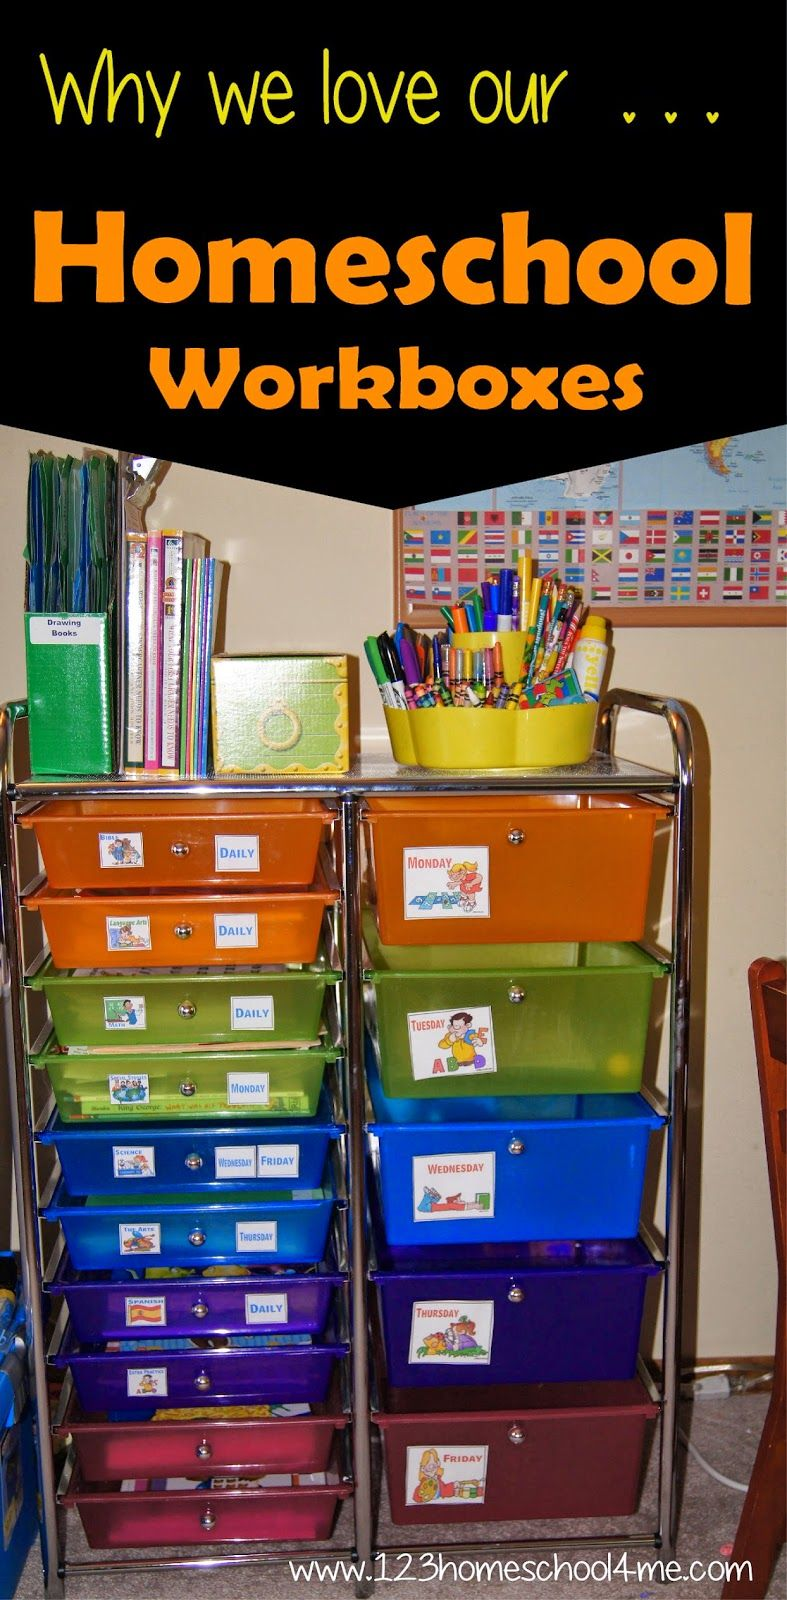 Our New Workboxes Homeschool Organization Homeschool Homeschool Room Organization